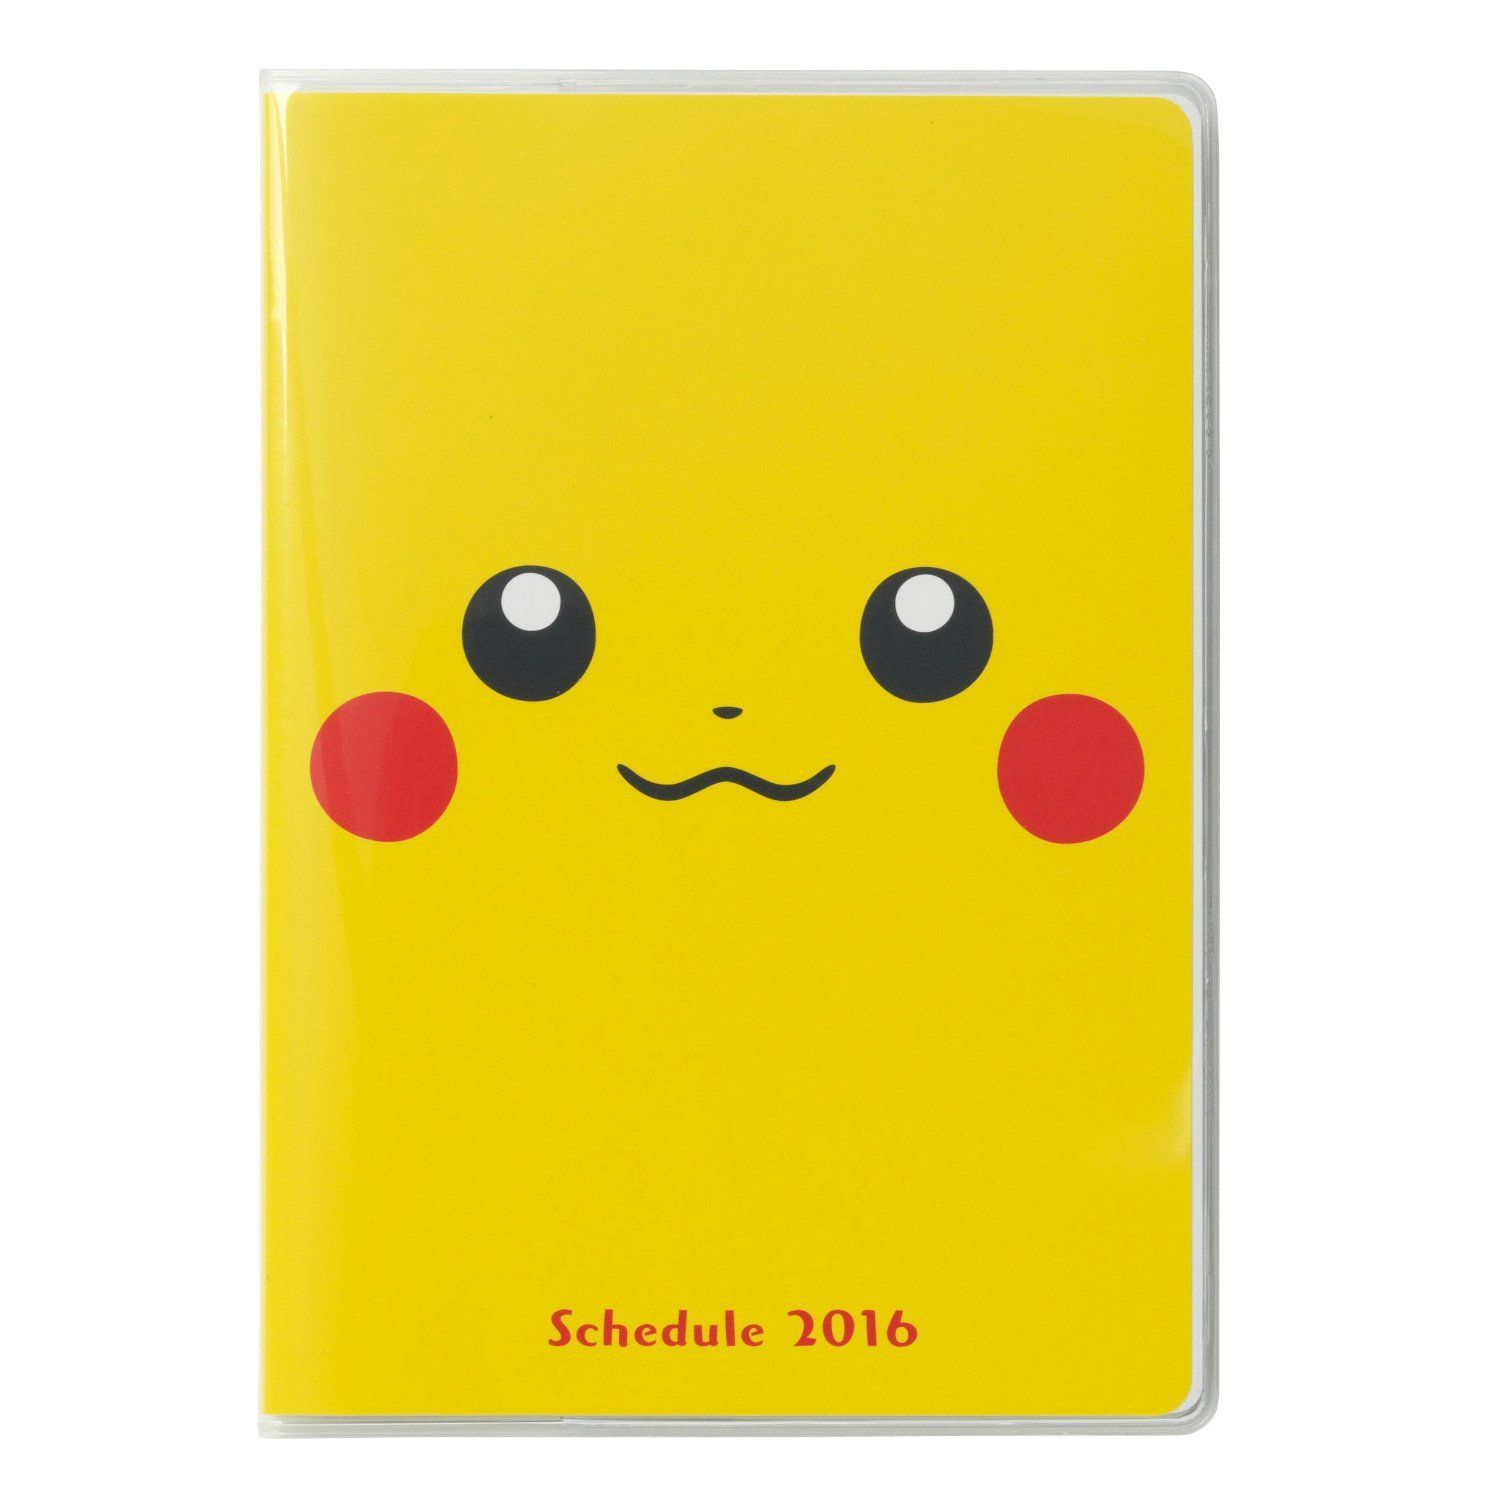 Impress all your friends by having the best planner ever.